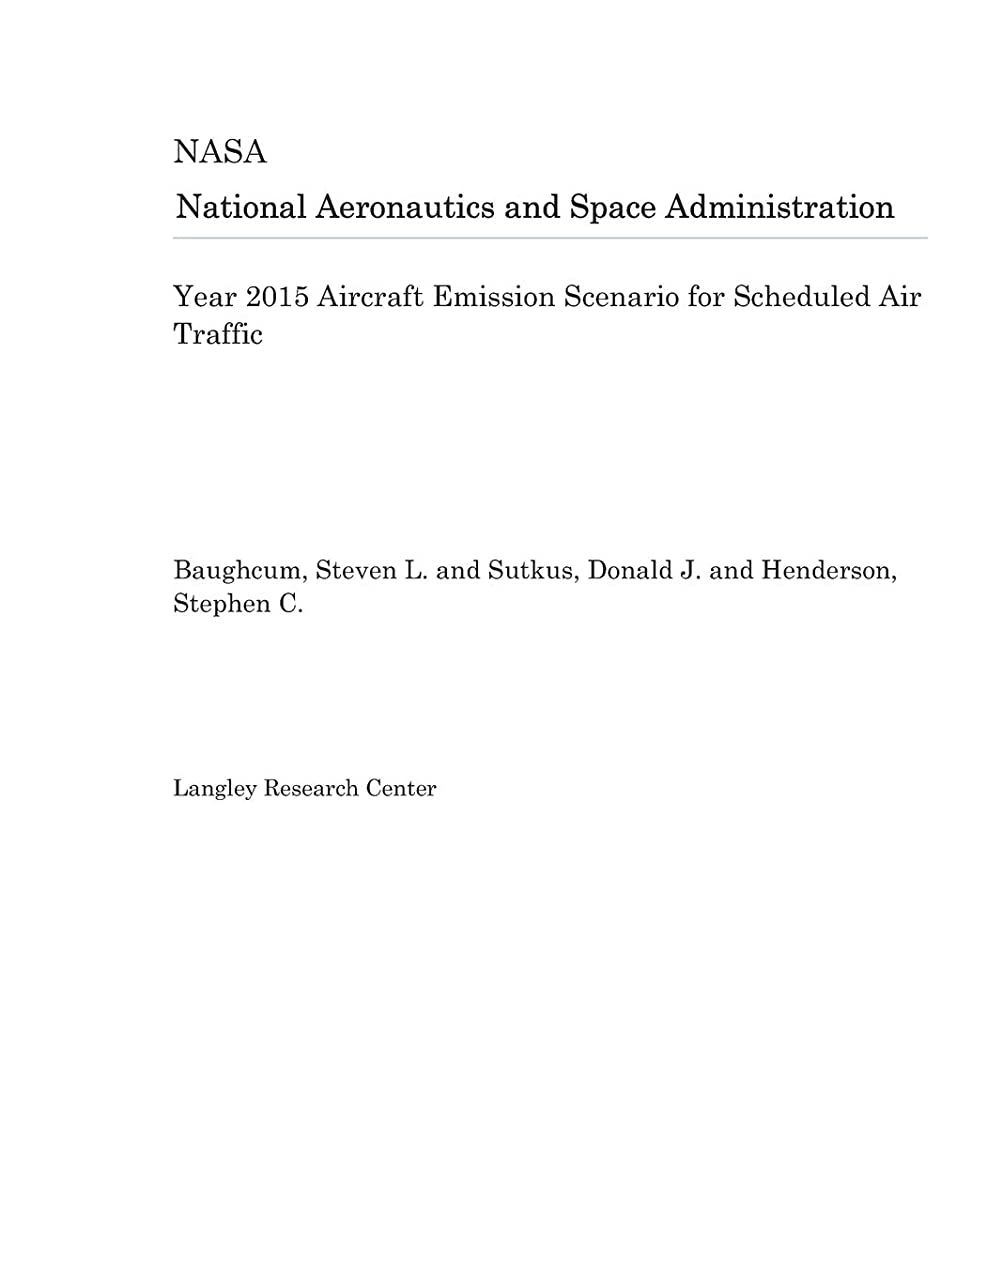 Year 2015 Aircraft Emission Scenario for Scheduled Air Traffic